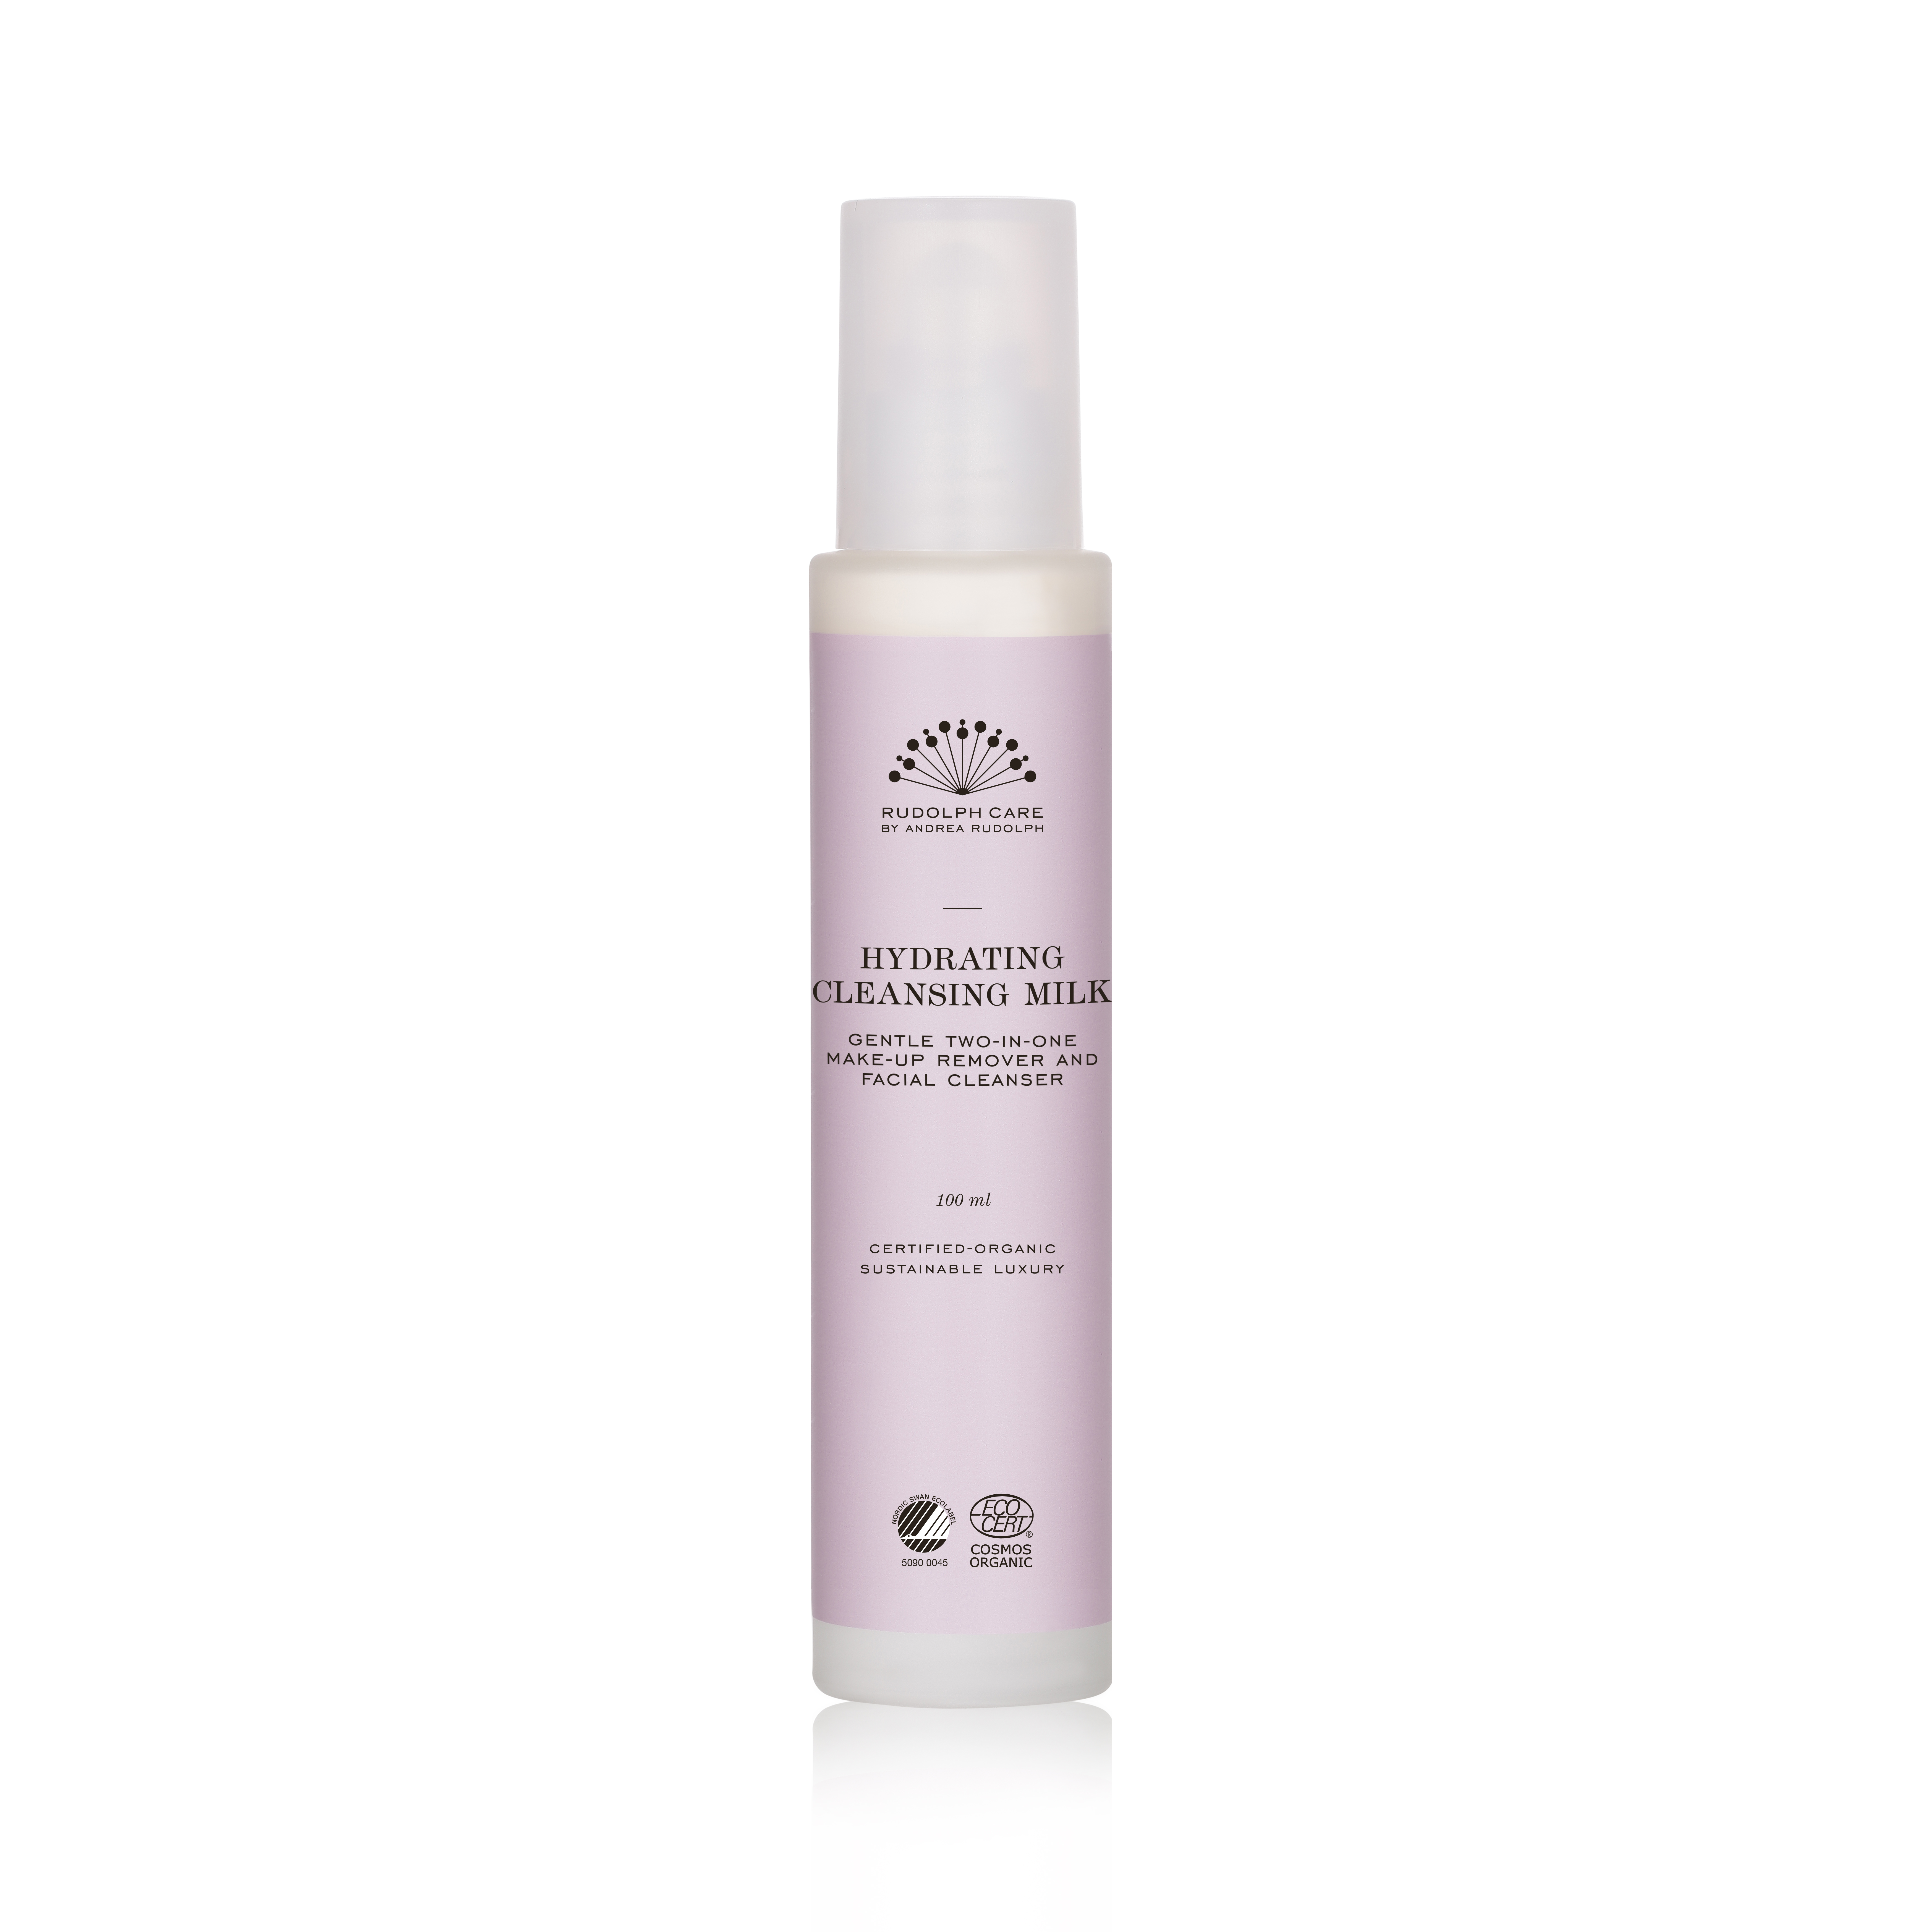 Rudolph Care Hydrating Cleansing Milk, 100 ml